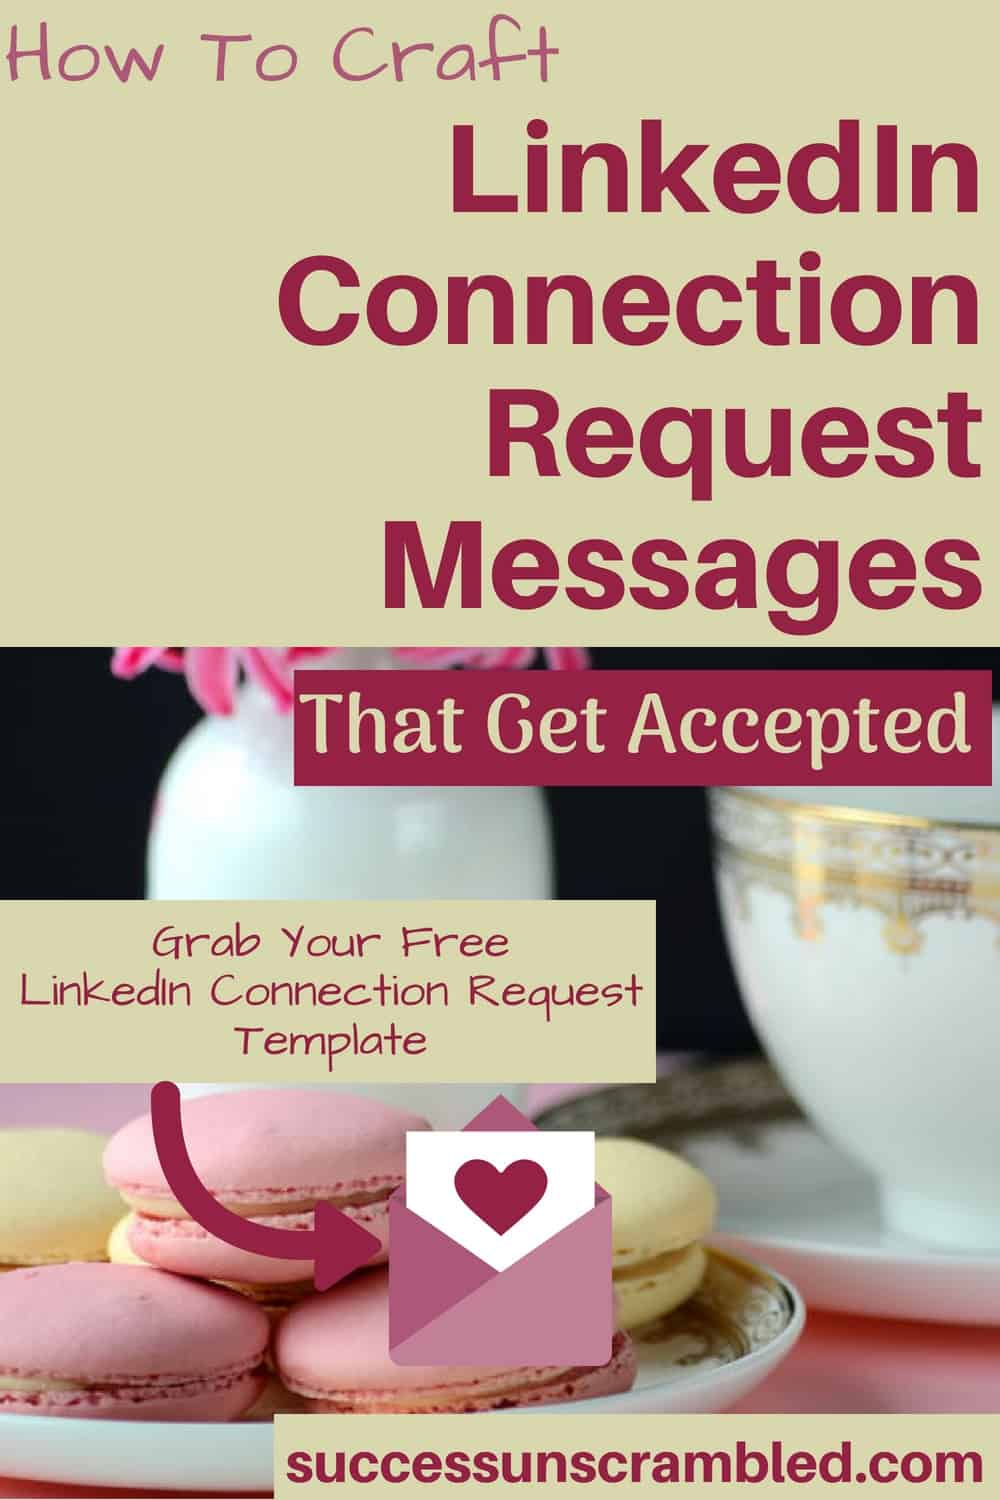 How To Craft LinkedIn Connection Request Messages That Get Accepted-1